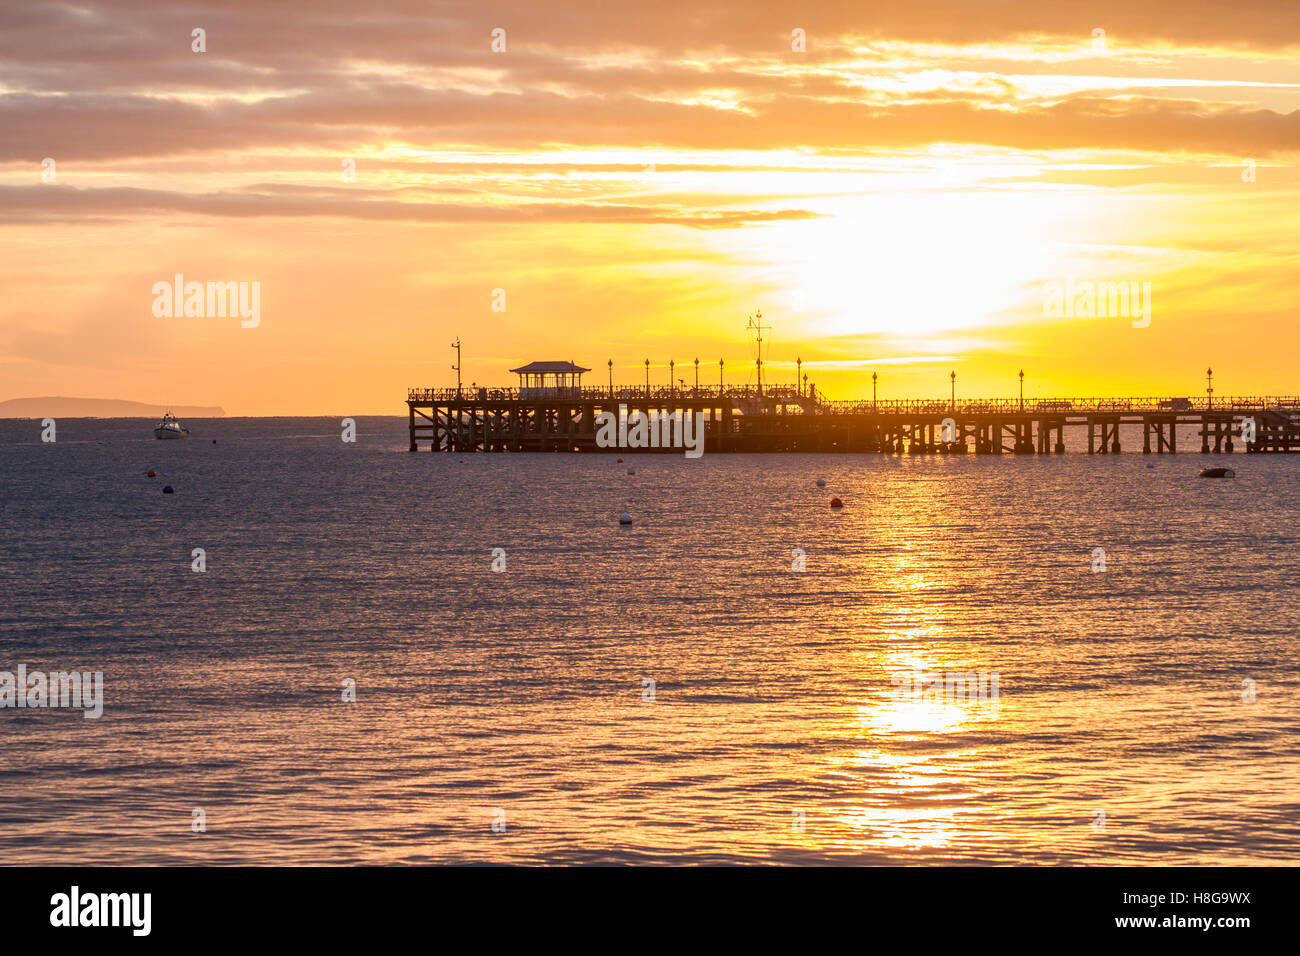 Beautiful Sun Rising Over Silhouette Pier In Swanage Bay Stock Photo